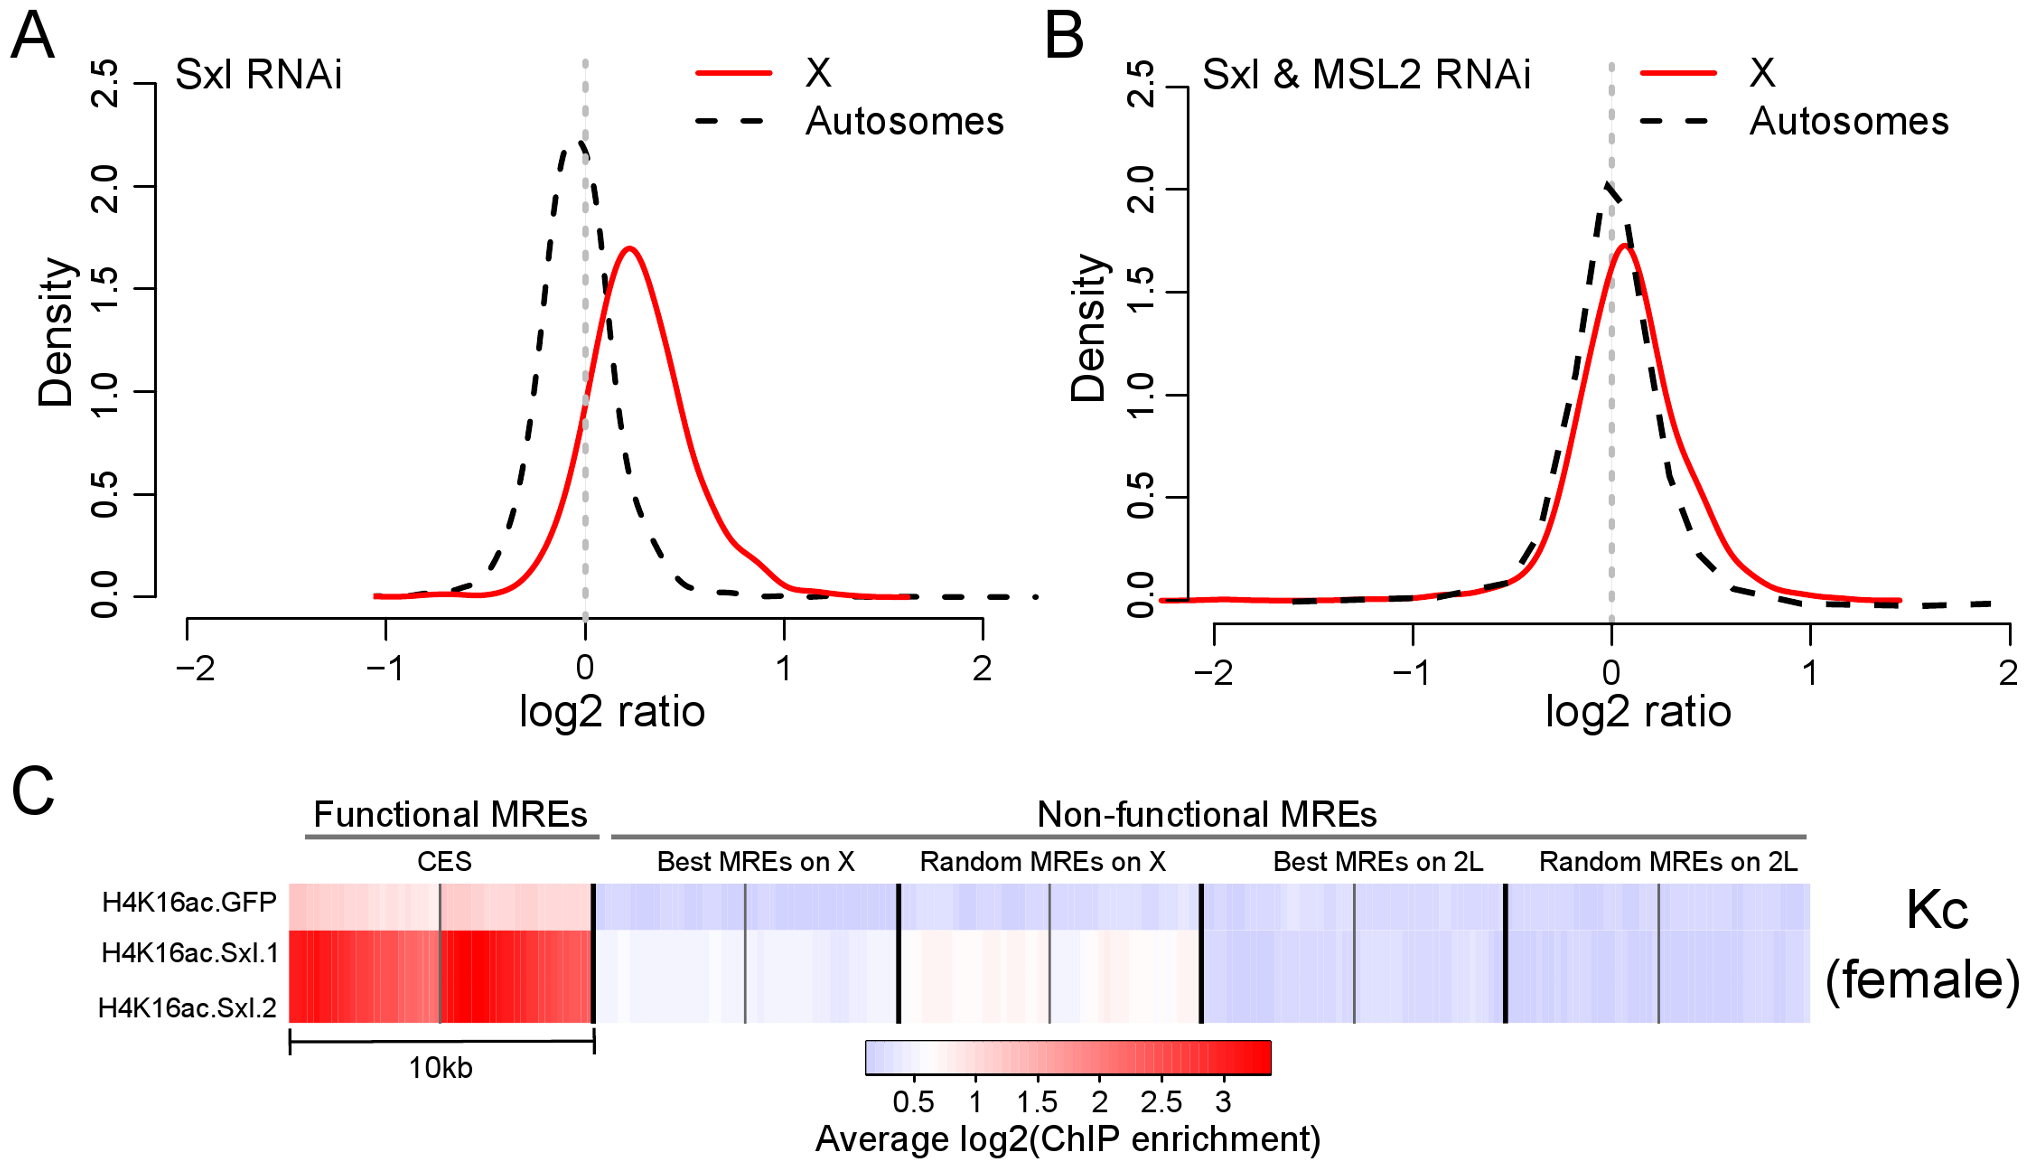 Ectopic upregulation of MSL2 by <i>Sxl</i> RNAi treatment induces dosage compensation of X-linked genes in female Kc cells by preferentially targeting MREs in an active chromatin context.